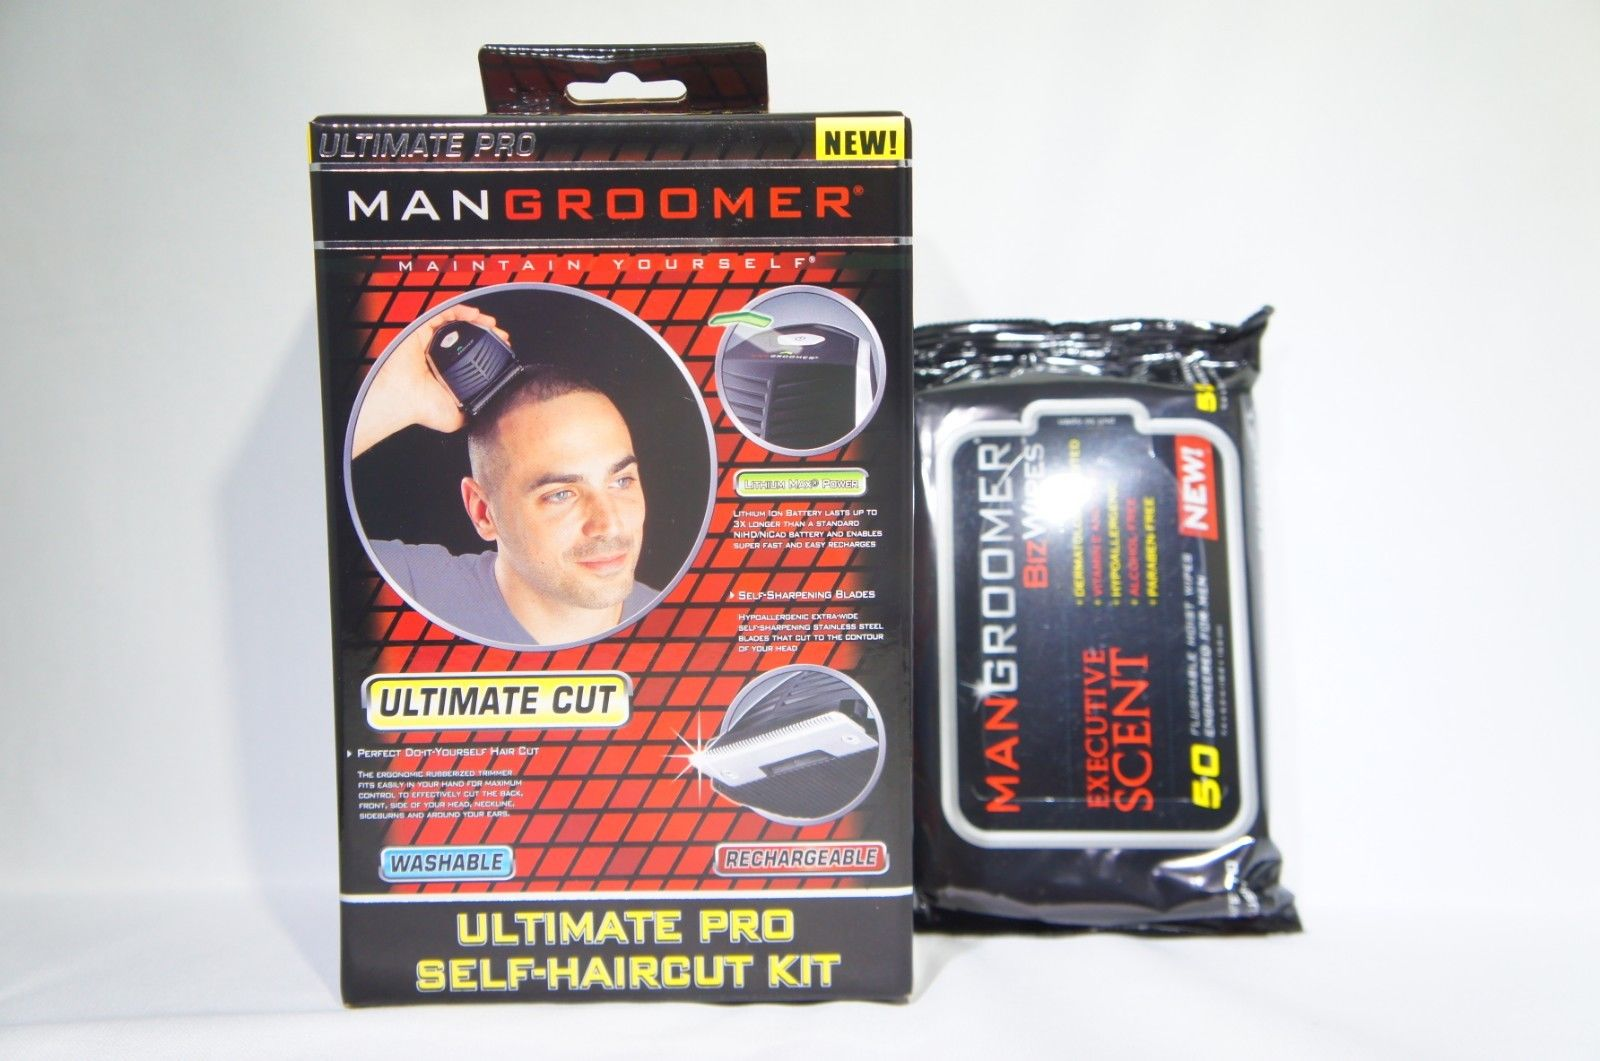 MANGROOMER 1999-6 ULTIMATE PRO Self-Haircut Kit with LITHIUM MAX/ WIPES